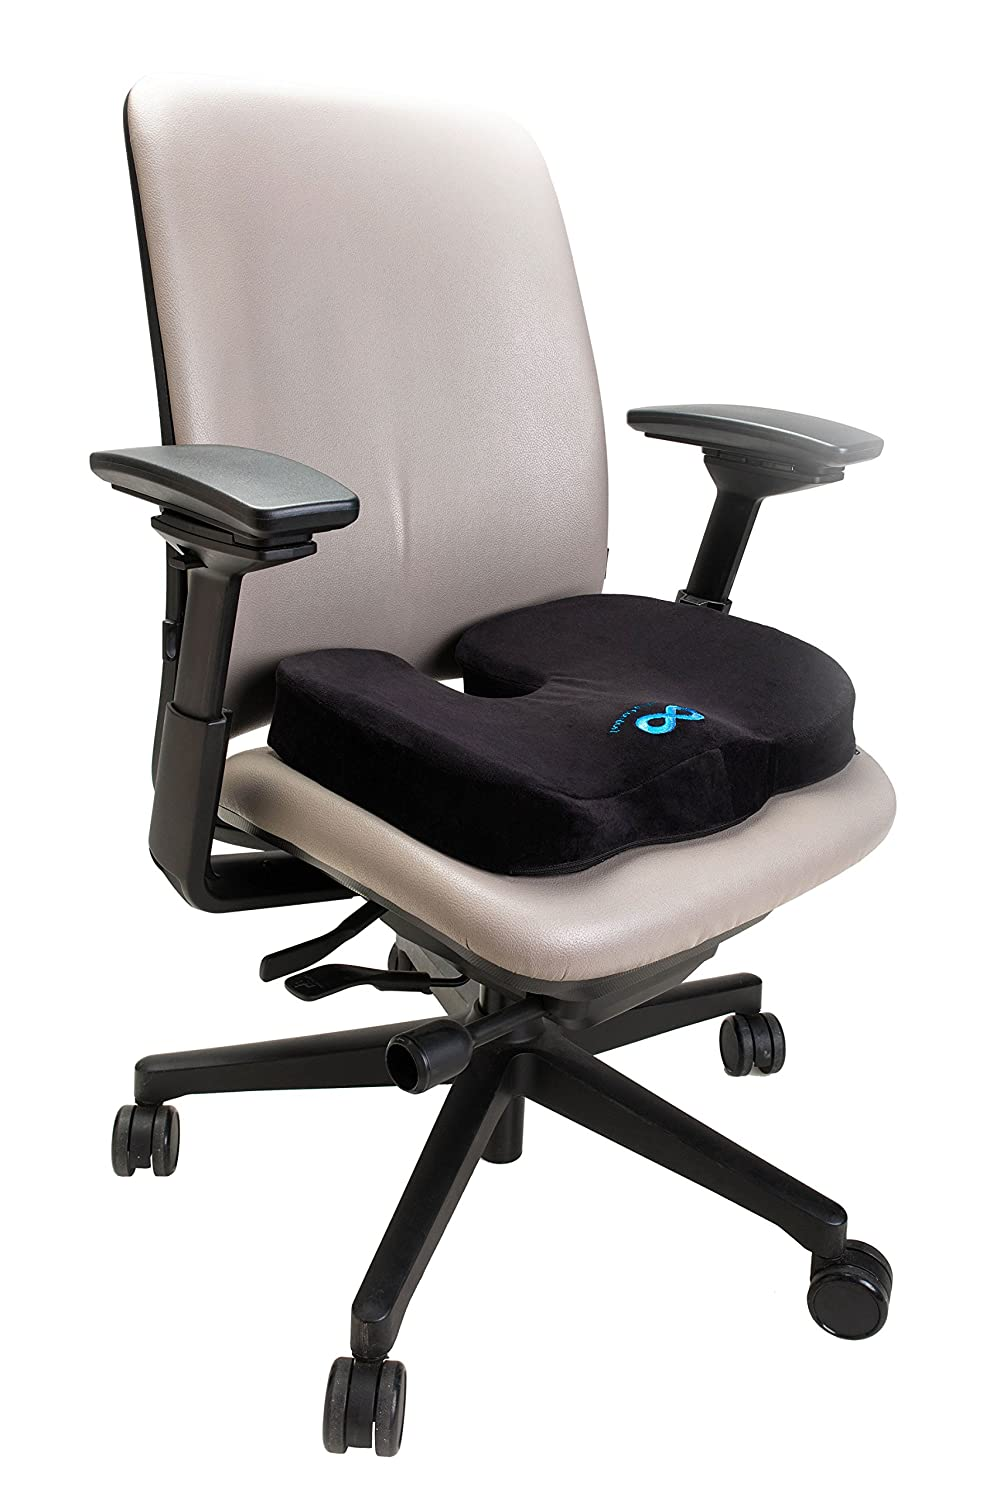 5 Top Best Office Chair Cushions That Are Comfortable Soft to Sit